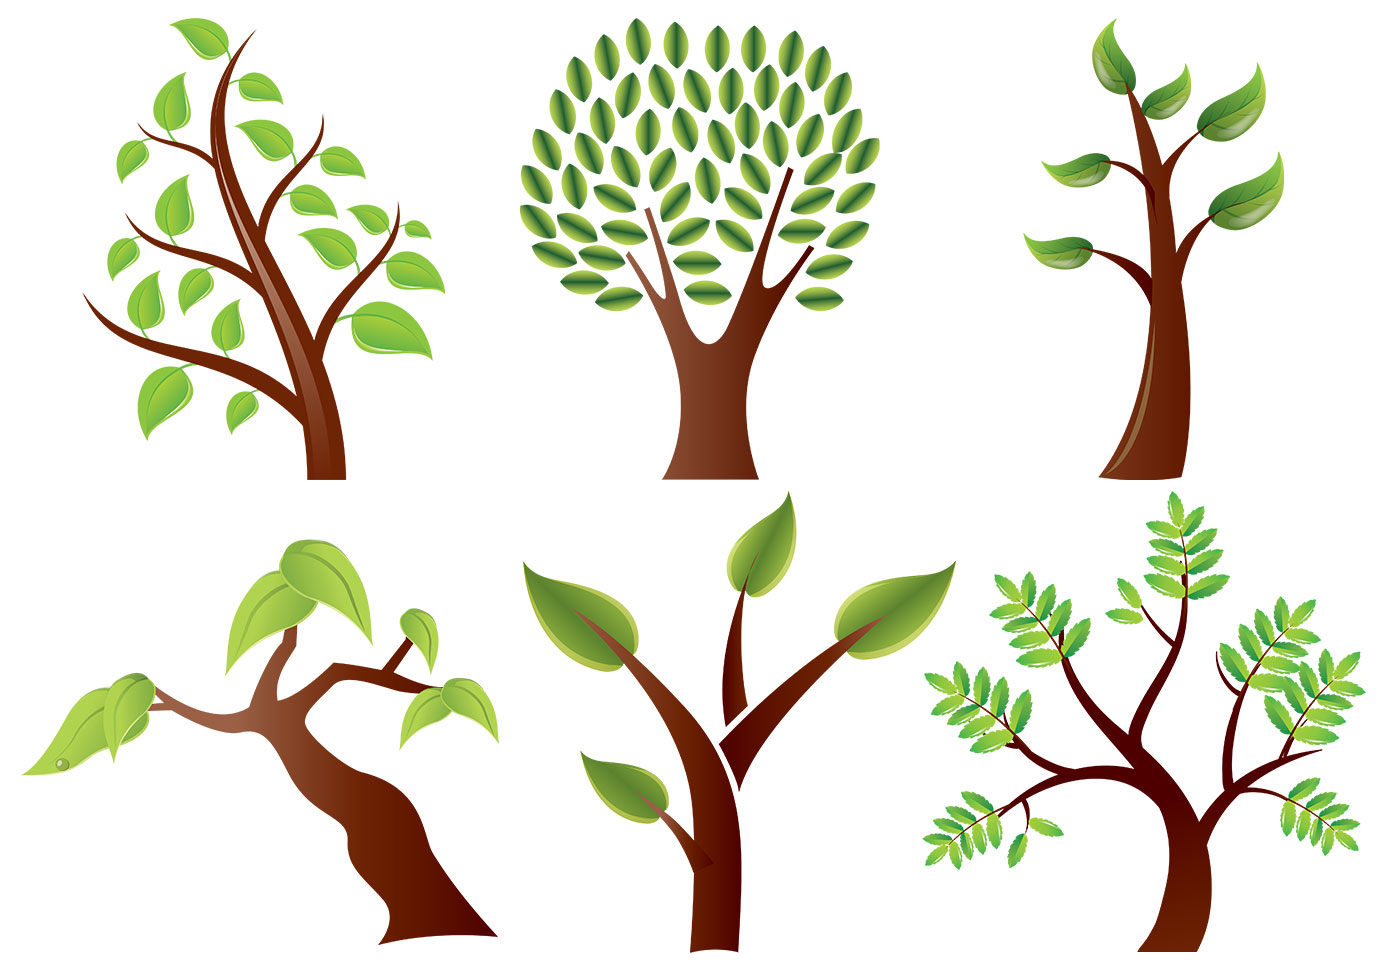 Stylized Trees Vector Pack - Download Free Vectors ...